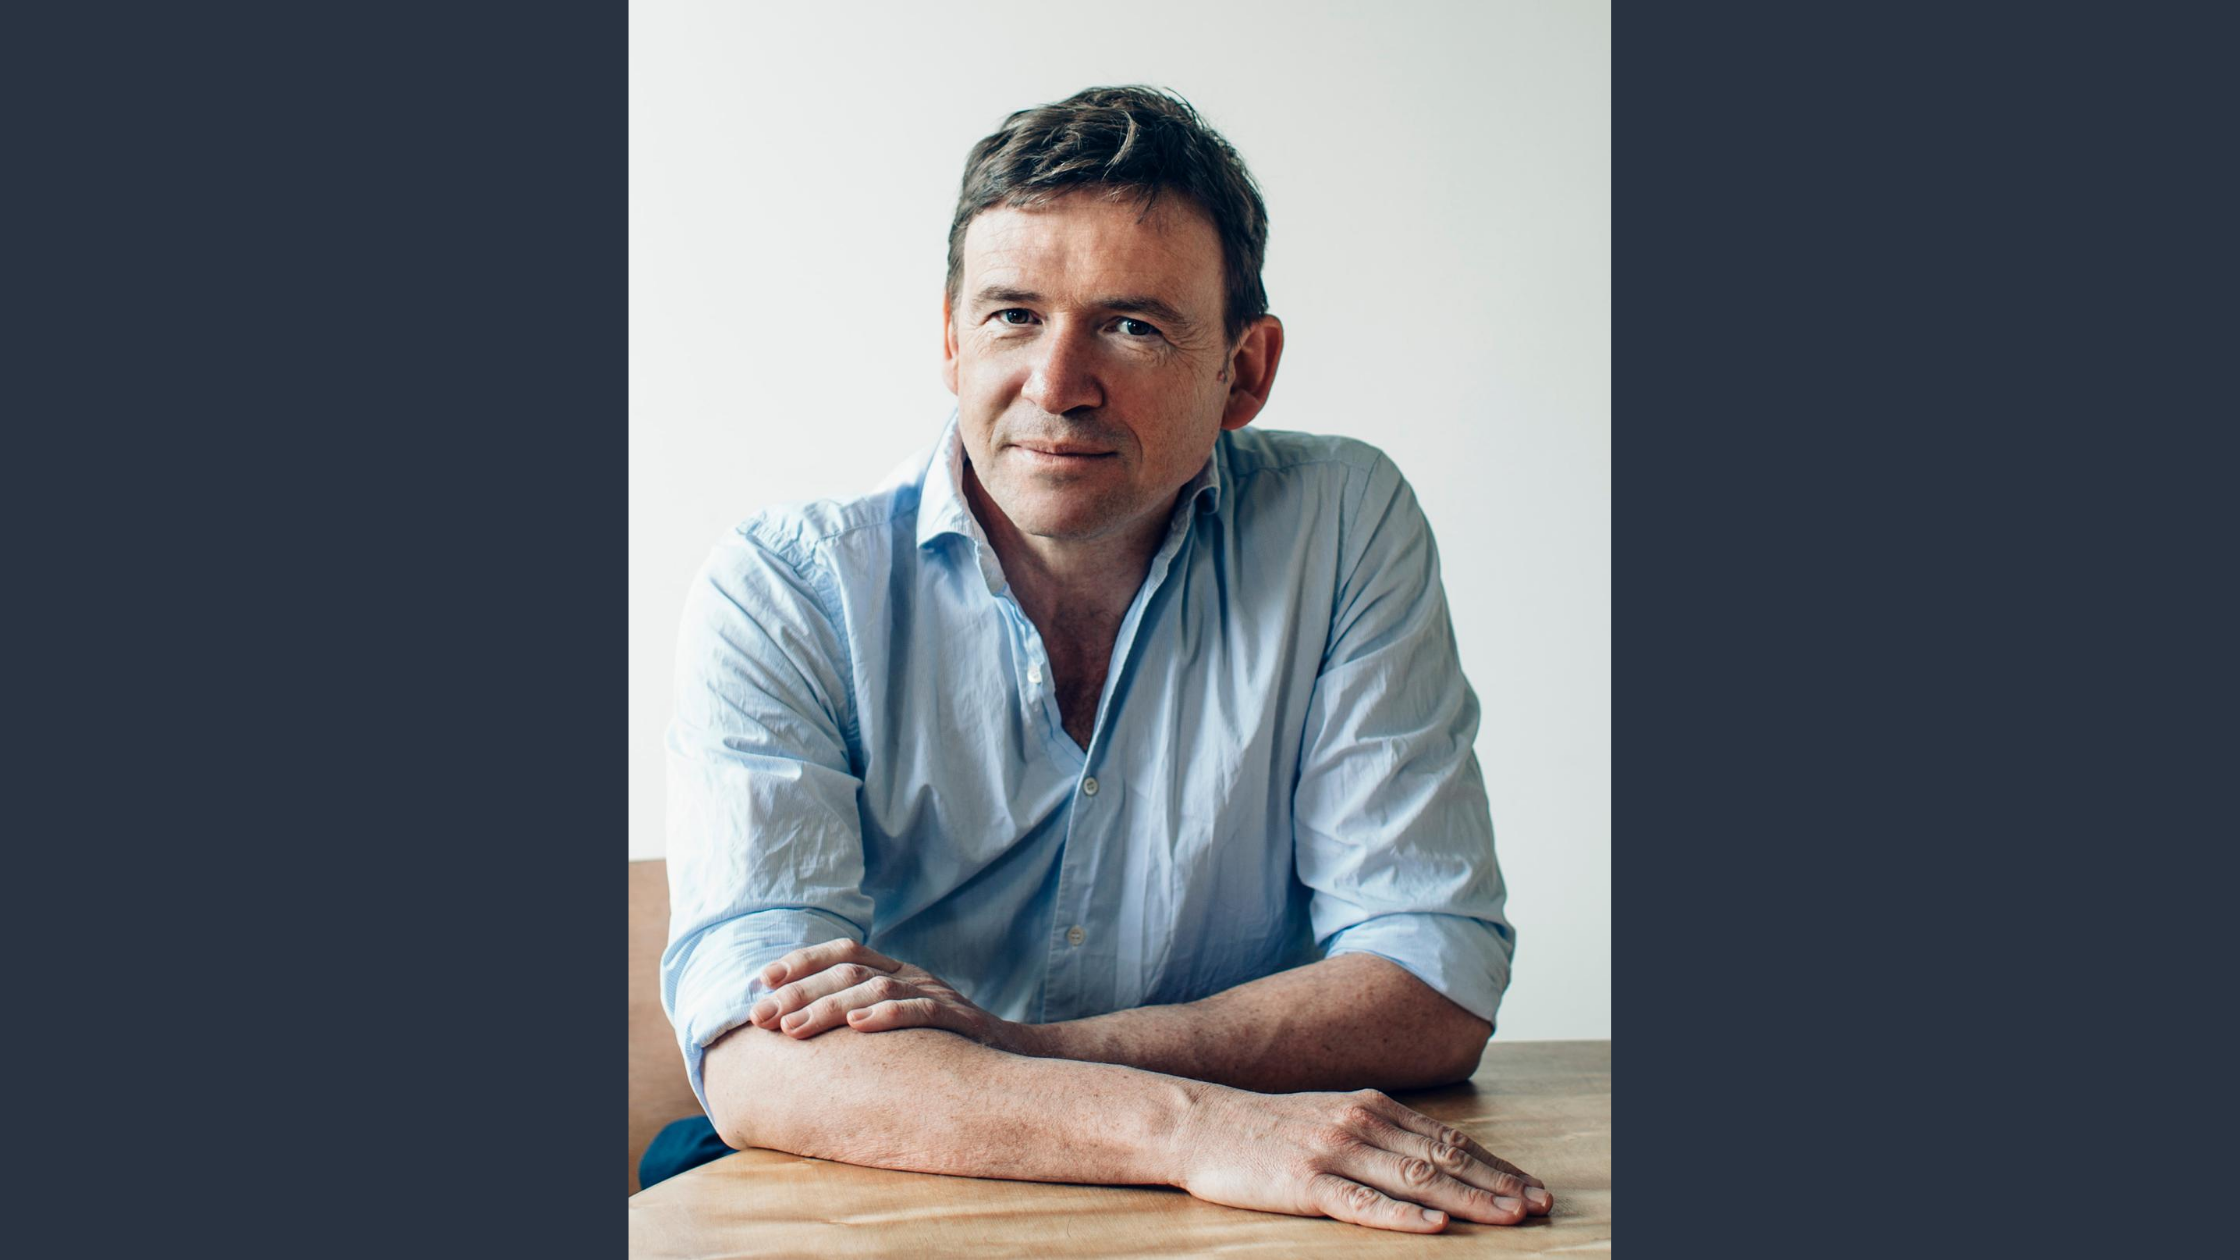 Author photo of David Nicholls